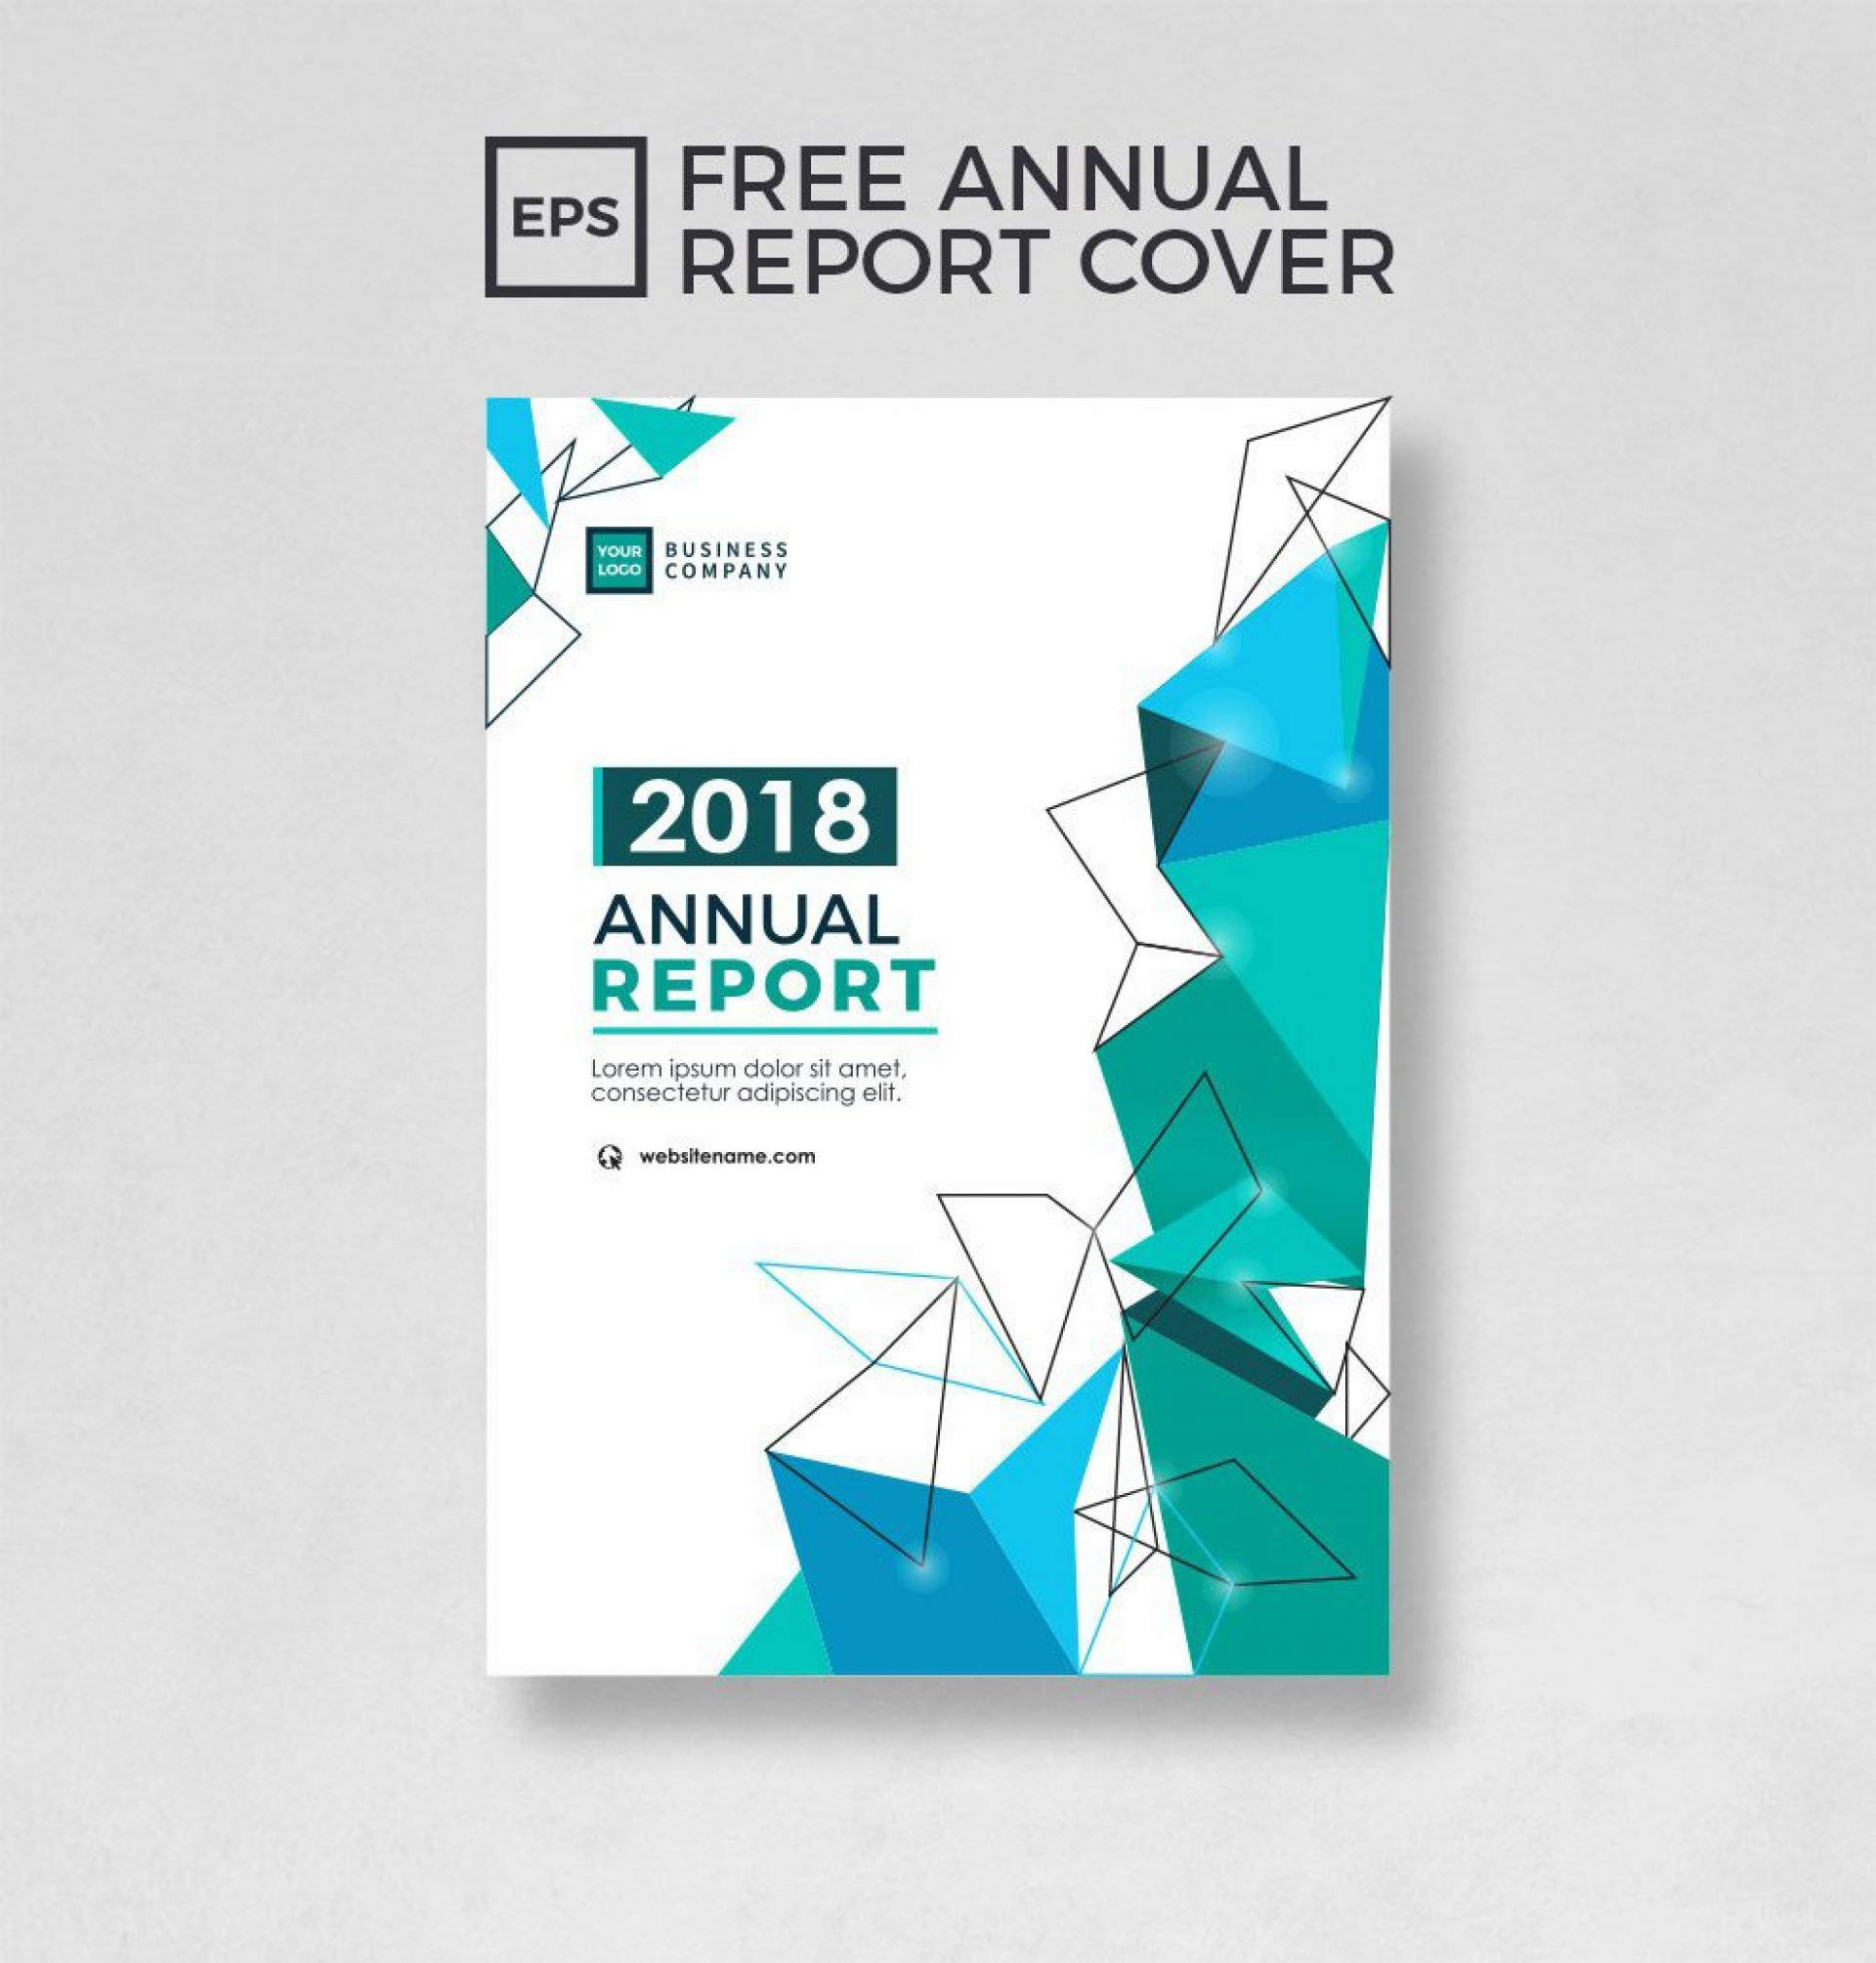 000 Exceptional Free Download Annual Report Cover Design Template High Definition  Page In Word1920